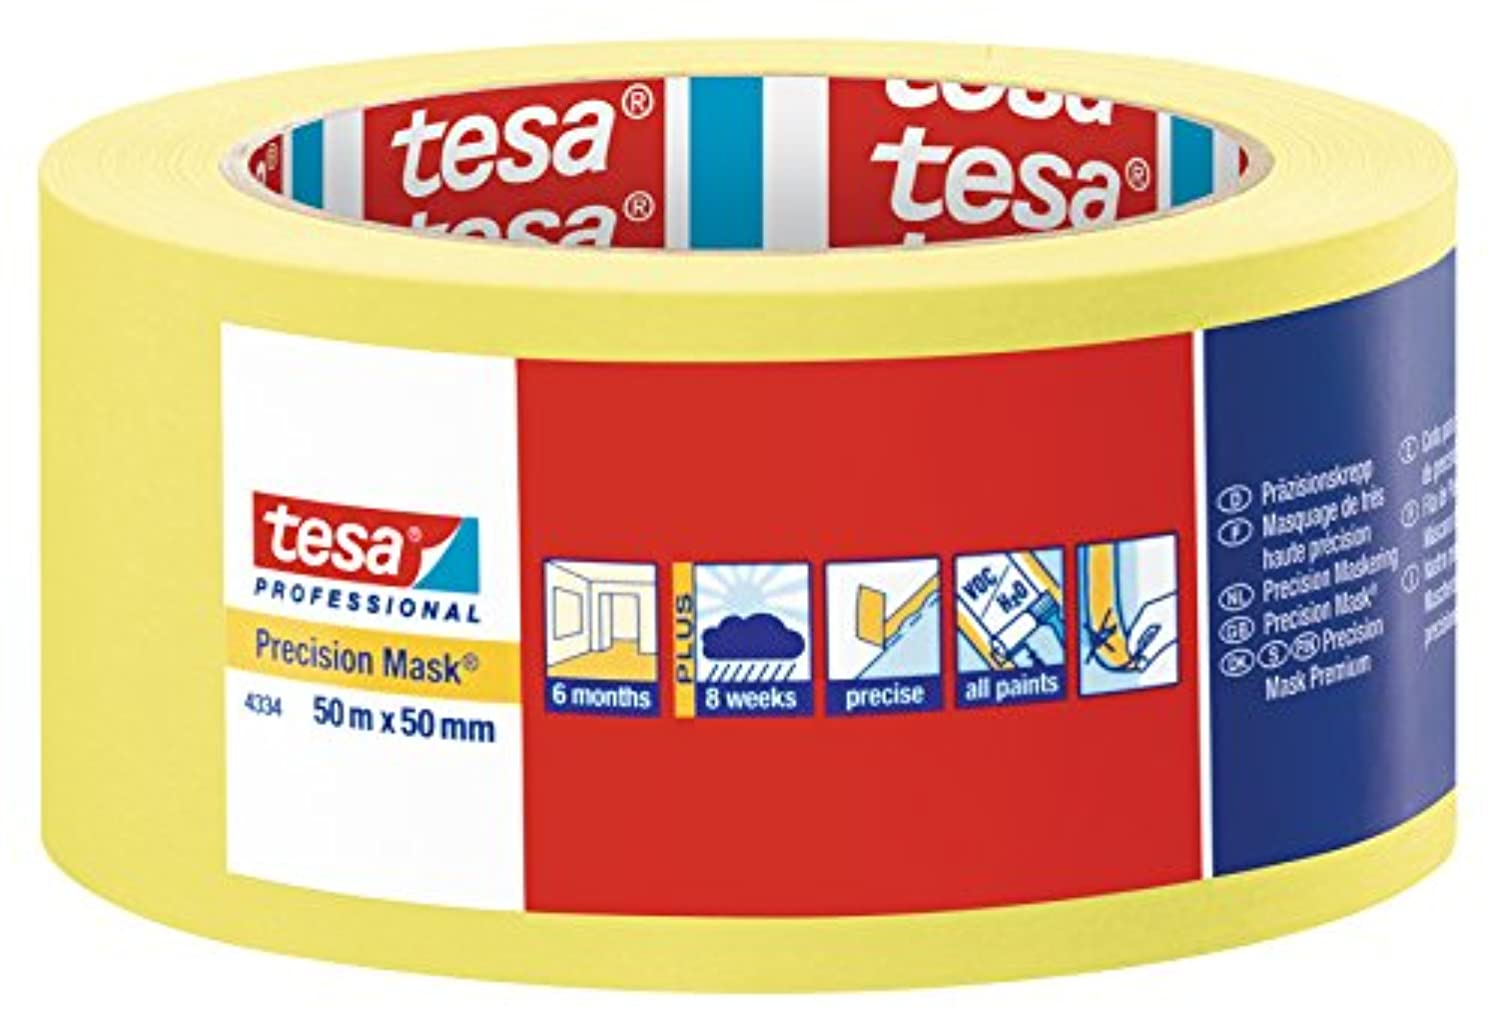 tesa 43340000400 Precision Mask Indoor Masking Tape for Painting and Decorating, Residue Free Removal, 50 m x 50 mm